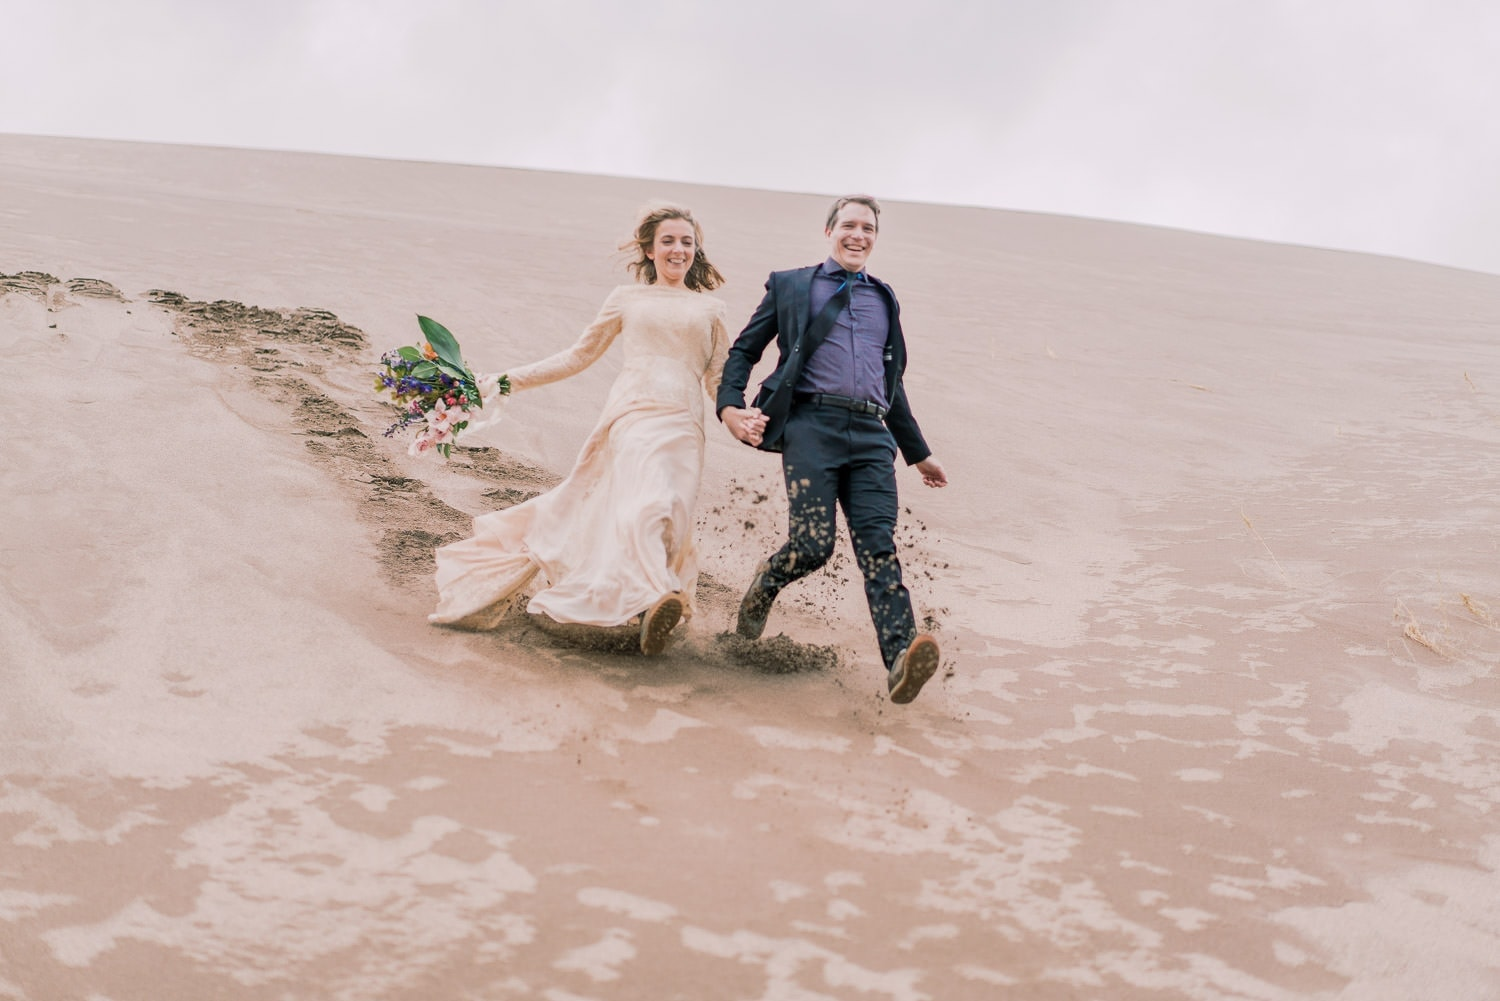 hiking elopement photographer in Colorado | Malachi at Shell Creek Photography